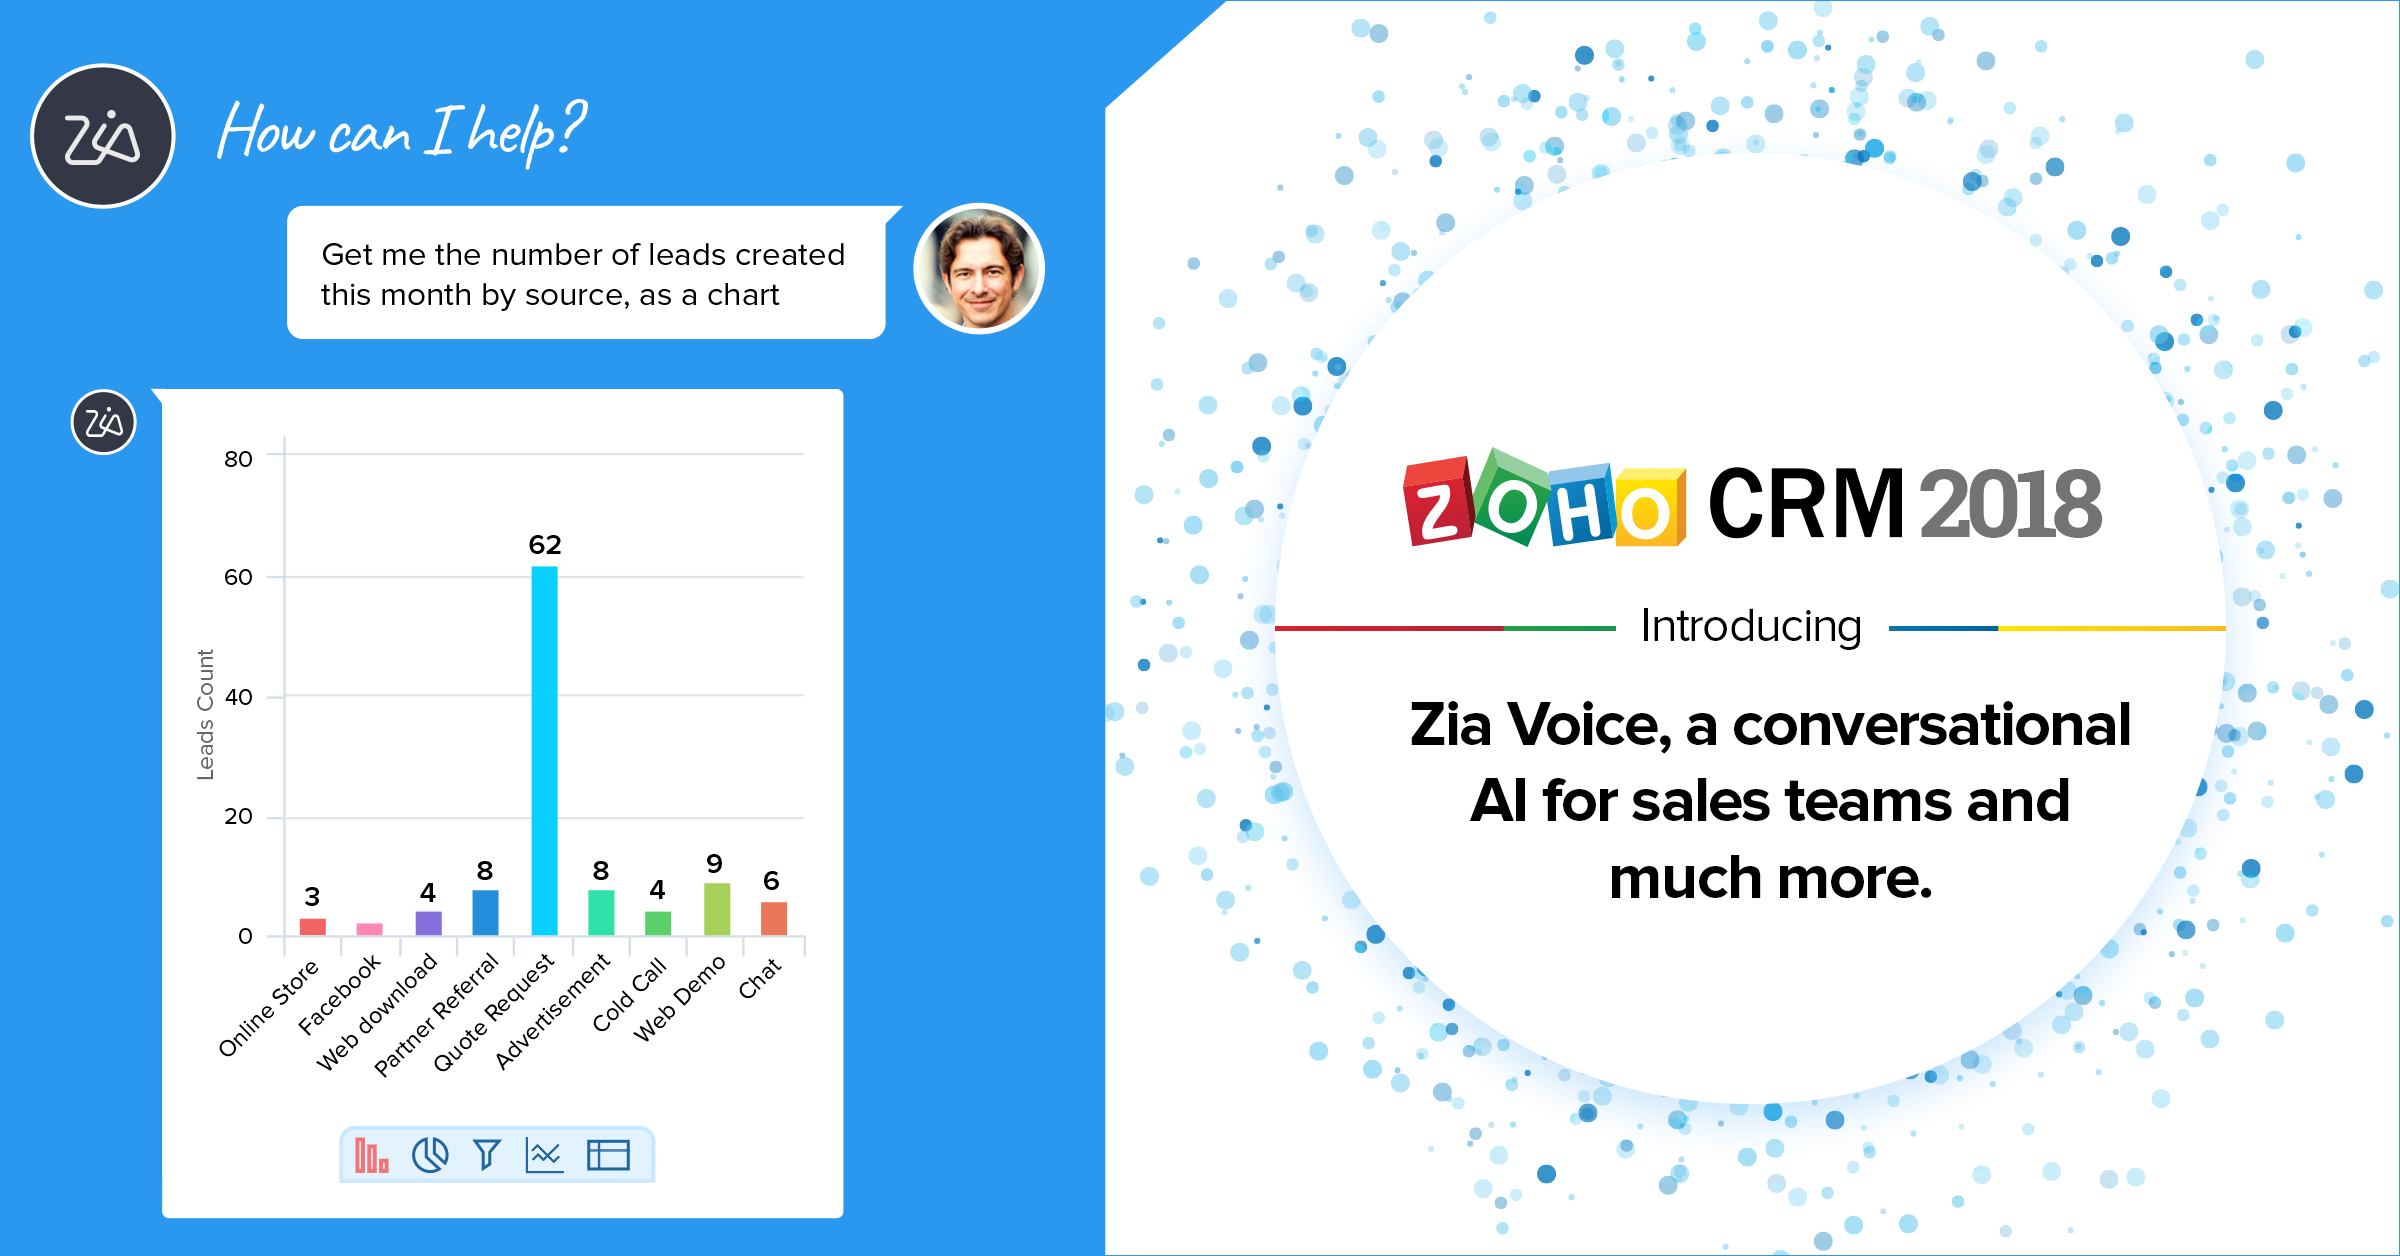 Zoho CRM 2018: Introducing Zia Voice, a conversational AI for sales teams and much more.